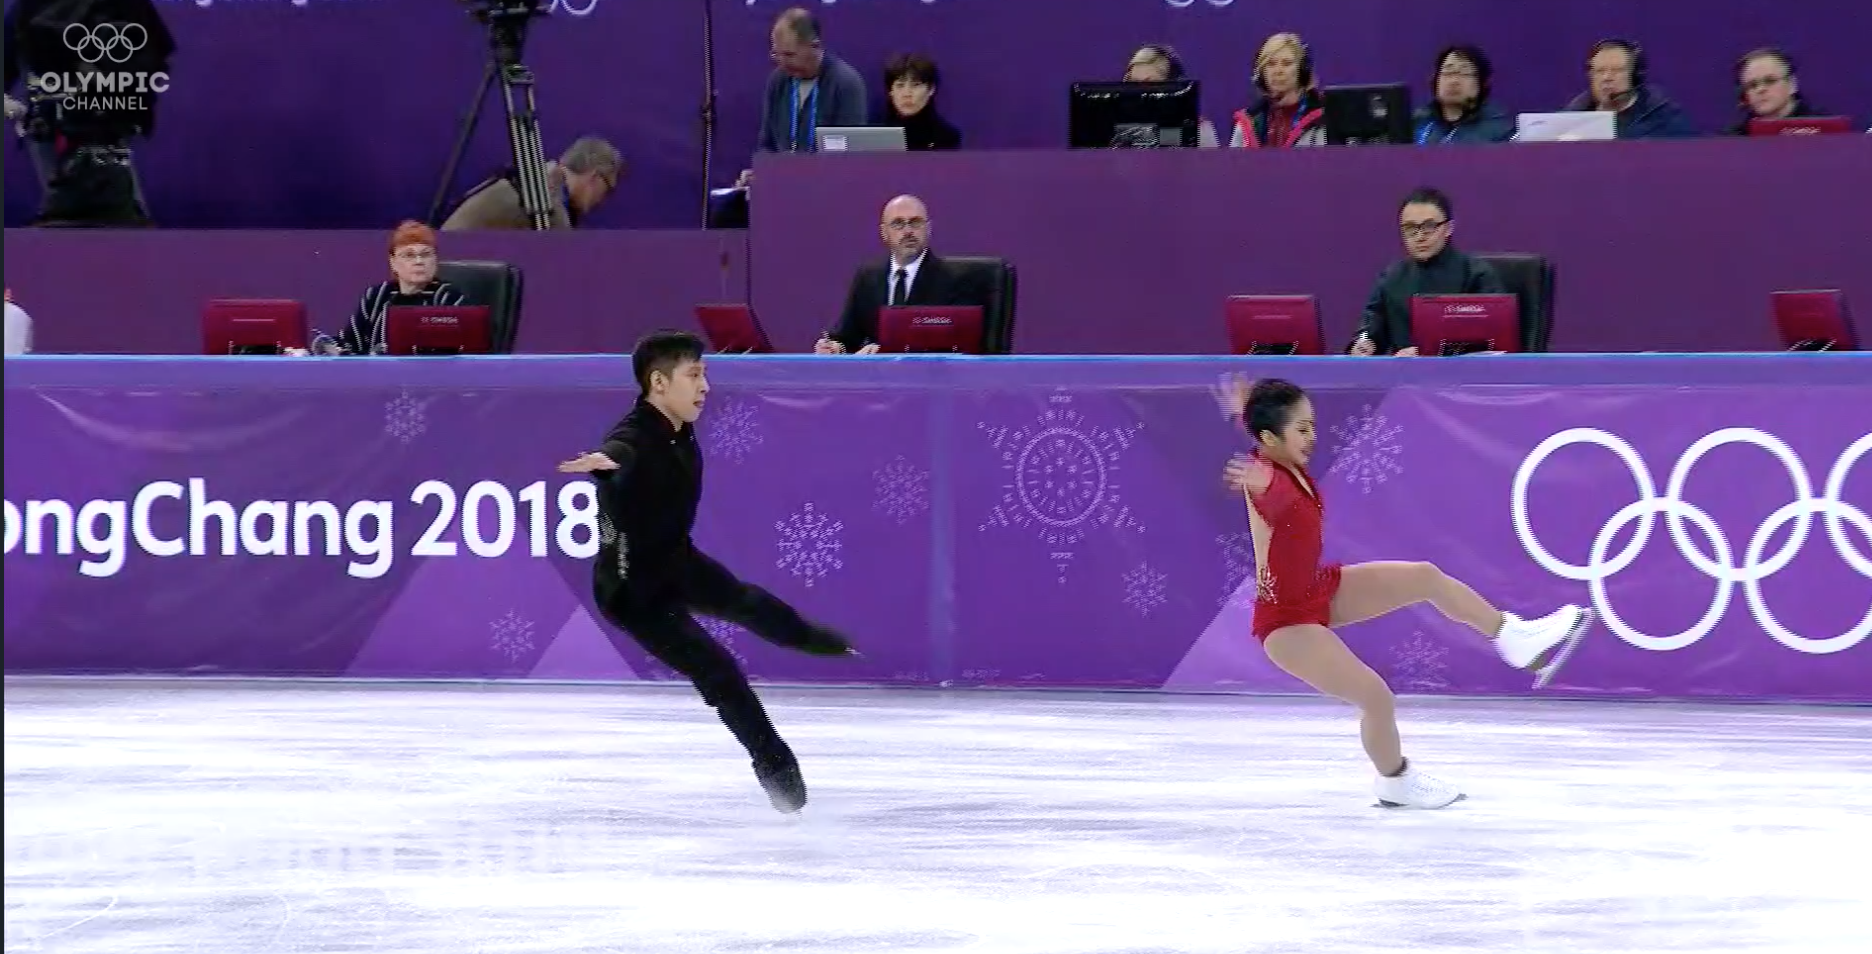 A Chinese judge was suspended for bias that led him to overlook mistakes like this botched landing by Chinese pair Sui Wenjing and Han Cong and place them first in the Olympic free skate. (Screenshot from the Olympic Channel.)